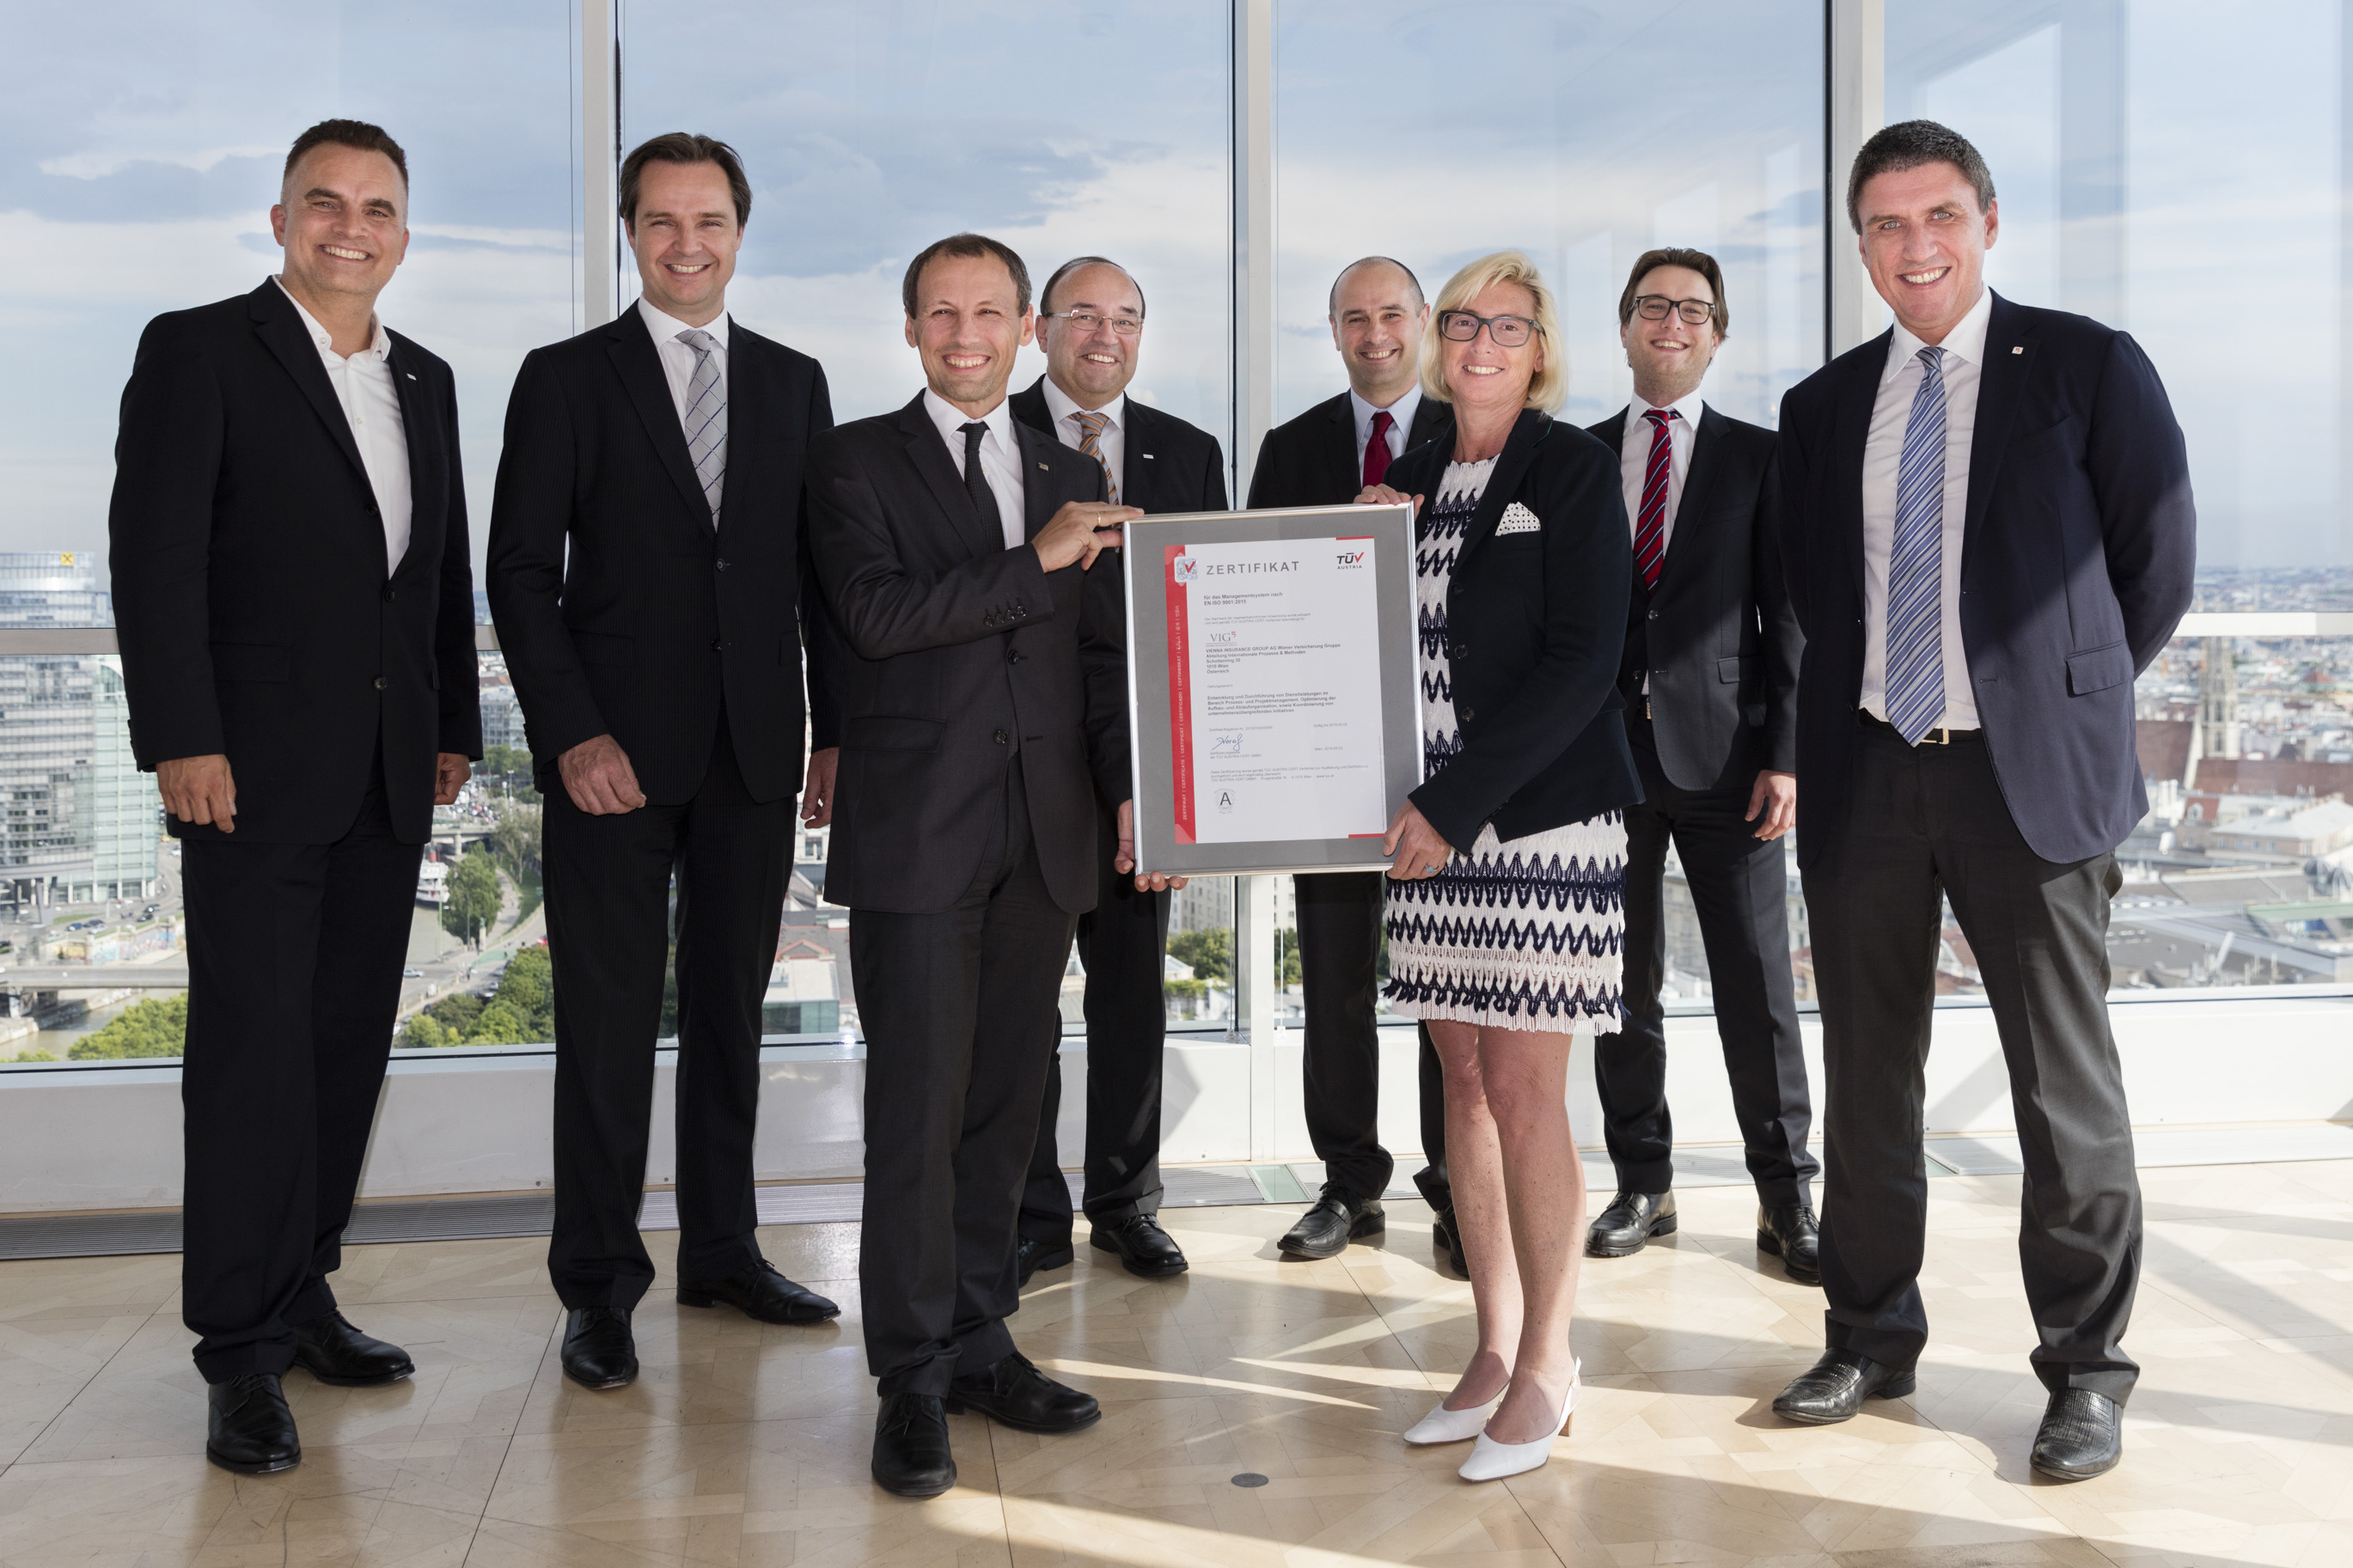 Photo credit: Sebastian Philipp Caption: VIG is presented with the quality management certificate (from left to right): Karl Wagner (CEO, Procon), Rob Bekkers (CEO, TÜV Austria CERT since 1 July 2016), Stefan Wallner (CEO, TÜV Austria CERT until 30 June 2016), Christian Völk (Senior Consultant, Procon), Christian Walter (Head of VIG International Processes and Methods), VIG CEO Elisabeth Stadler, Alexander Mayer (VIG International Processes and Methods), VIG Managing Board Member Roland Gröll